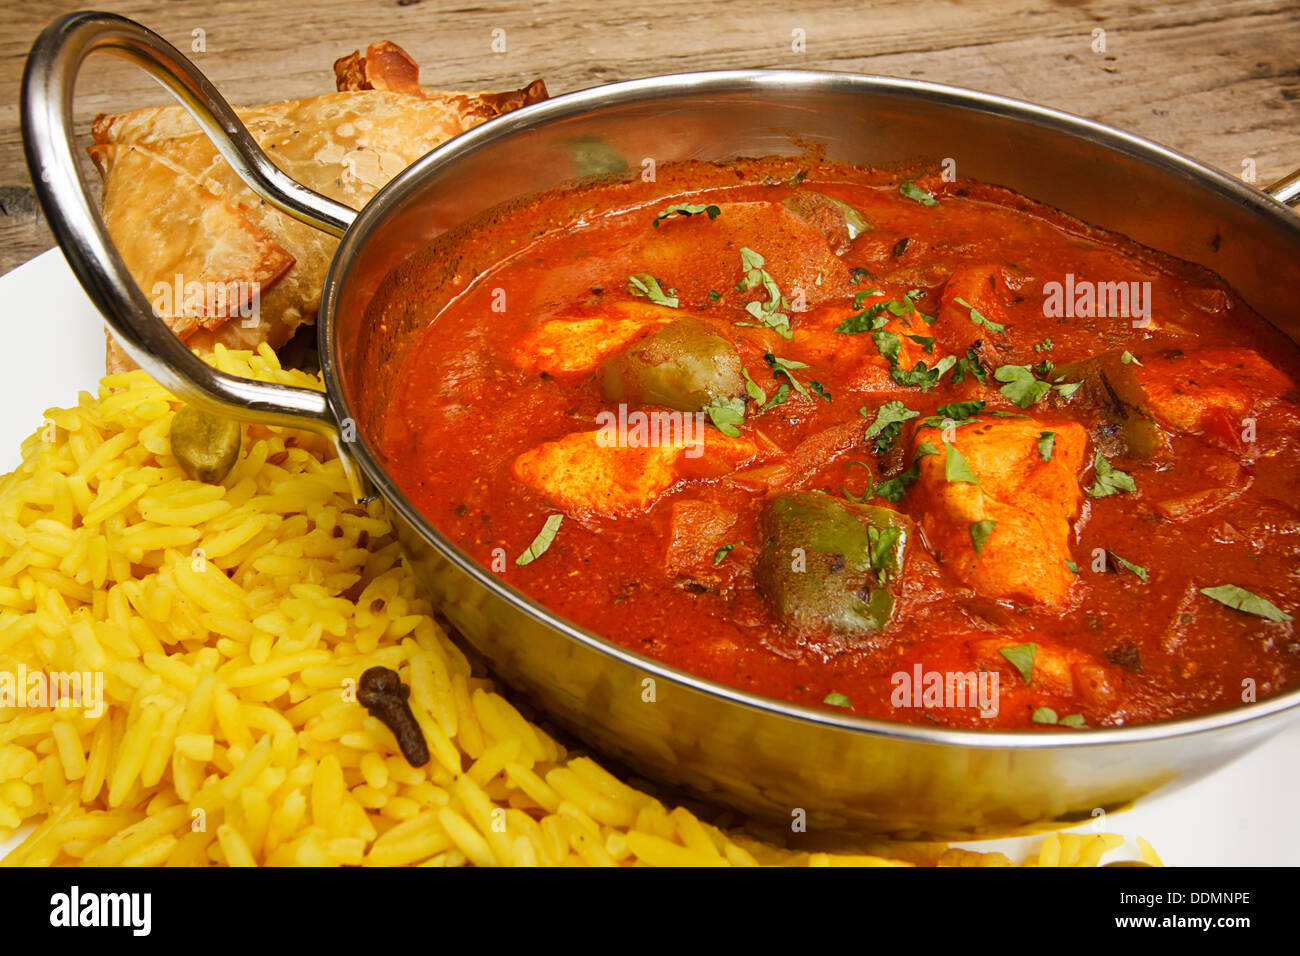 Chicken jalfrezi a popular indian curry available at eastern restaurants - Stock Image